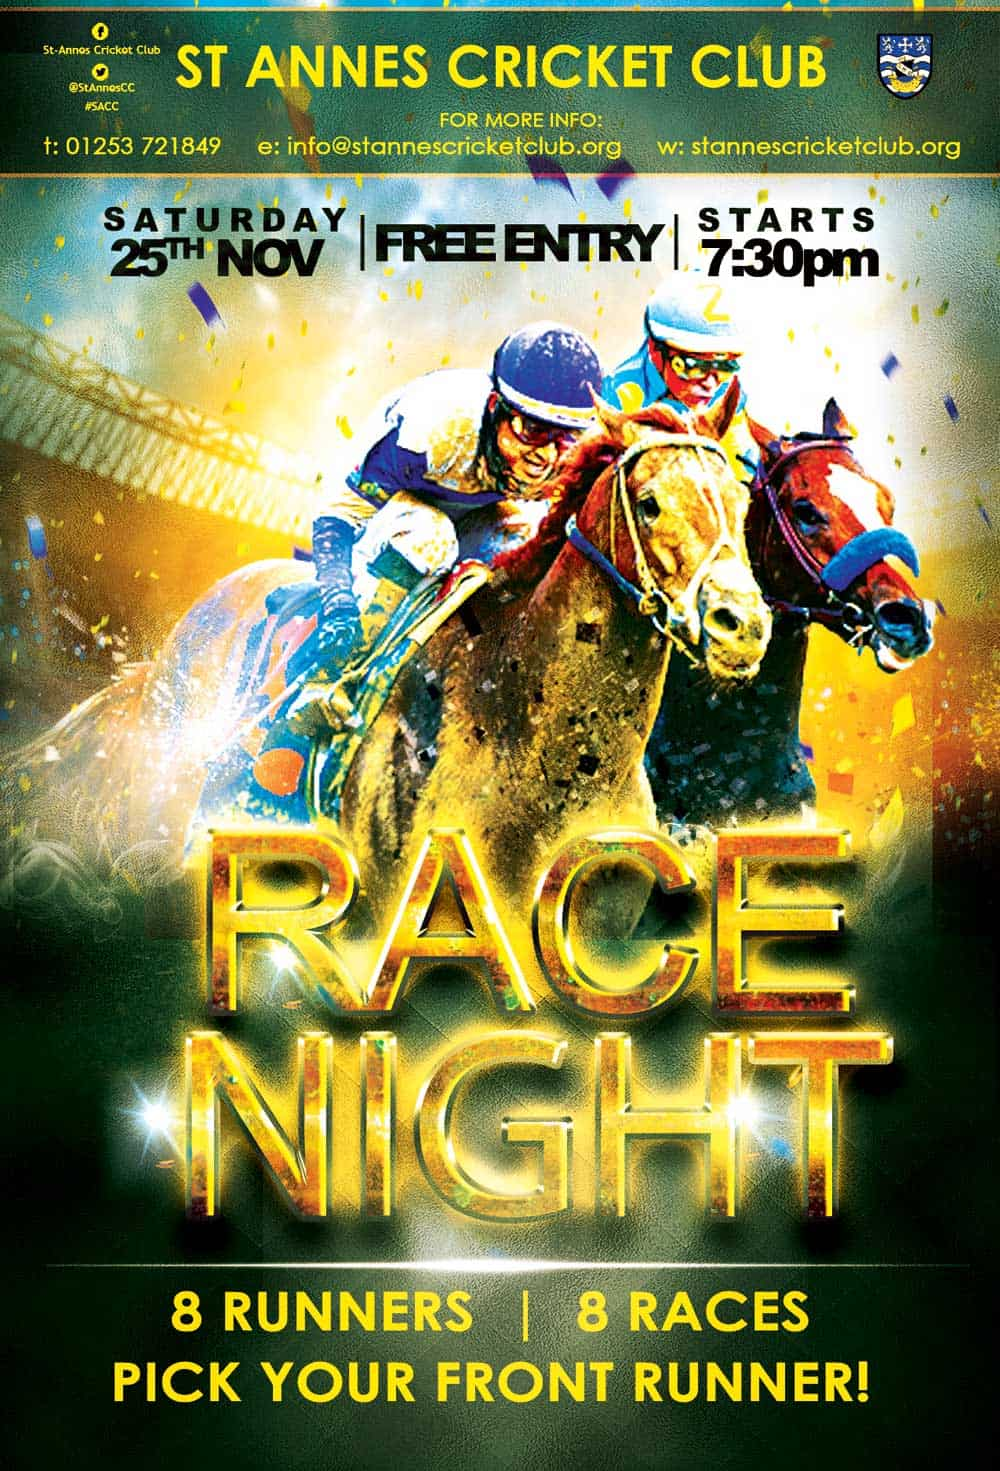 All the thrill of the chase at Race Night 2017 - St Annes Cricket Club